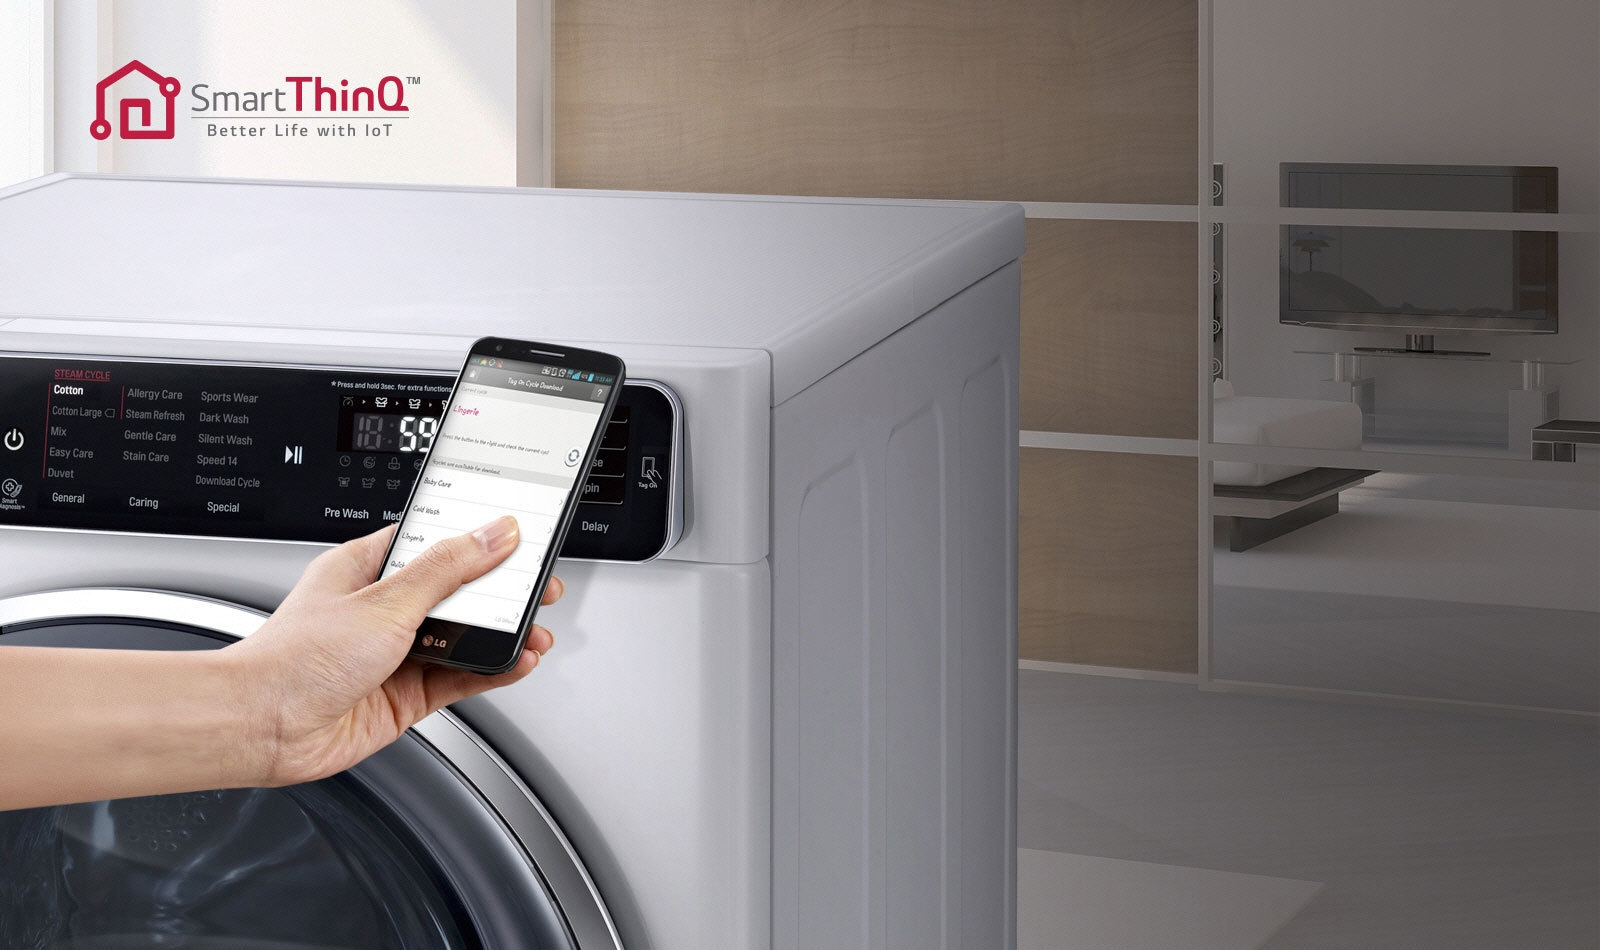 SMART CONVENIENCE WITH NFC